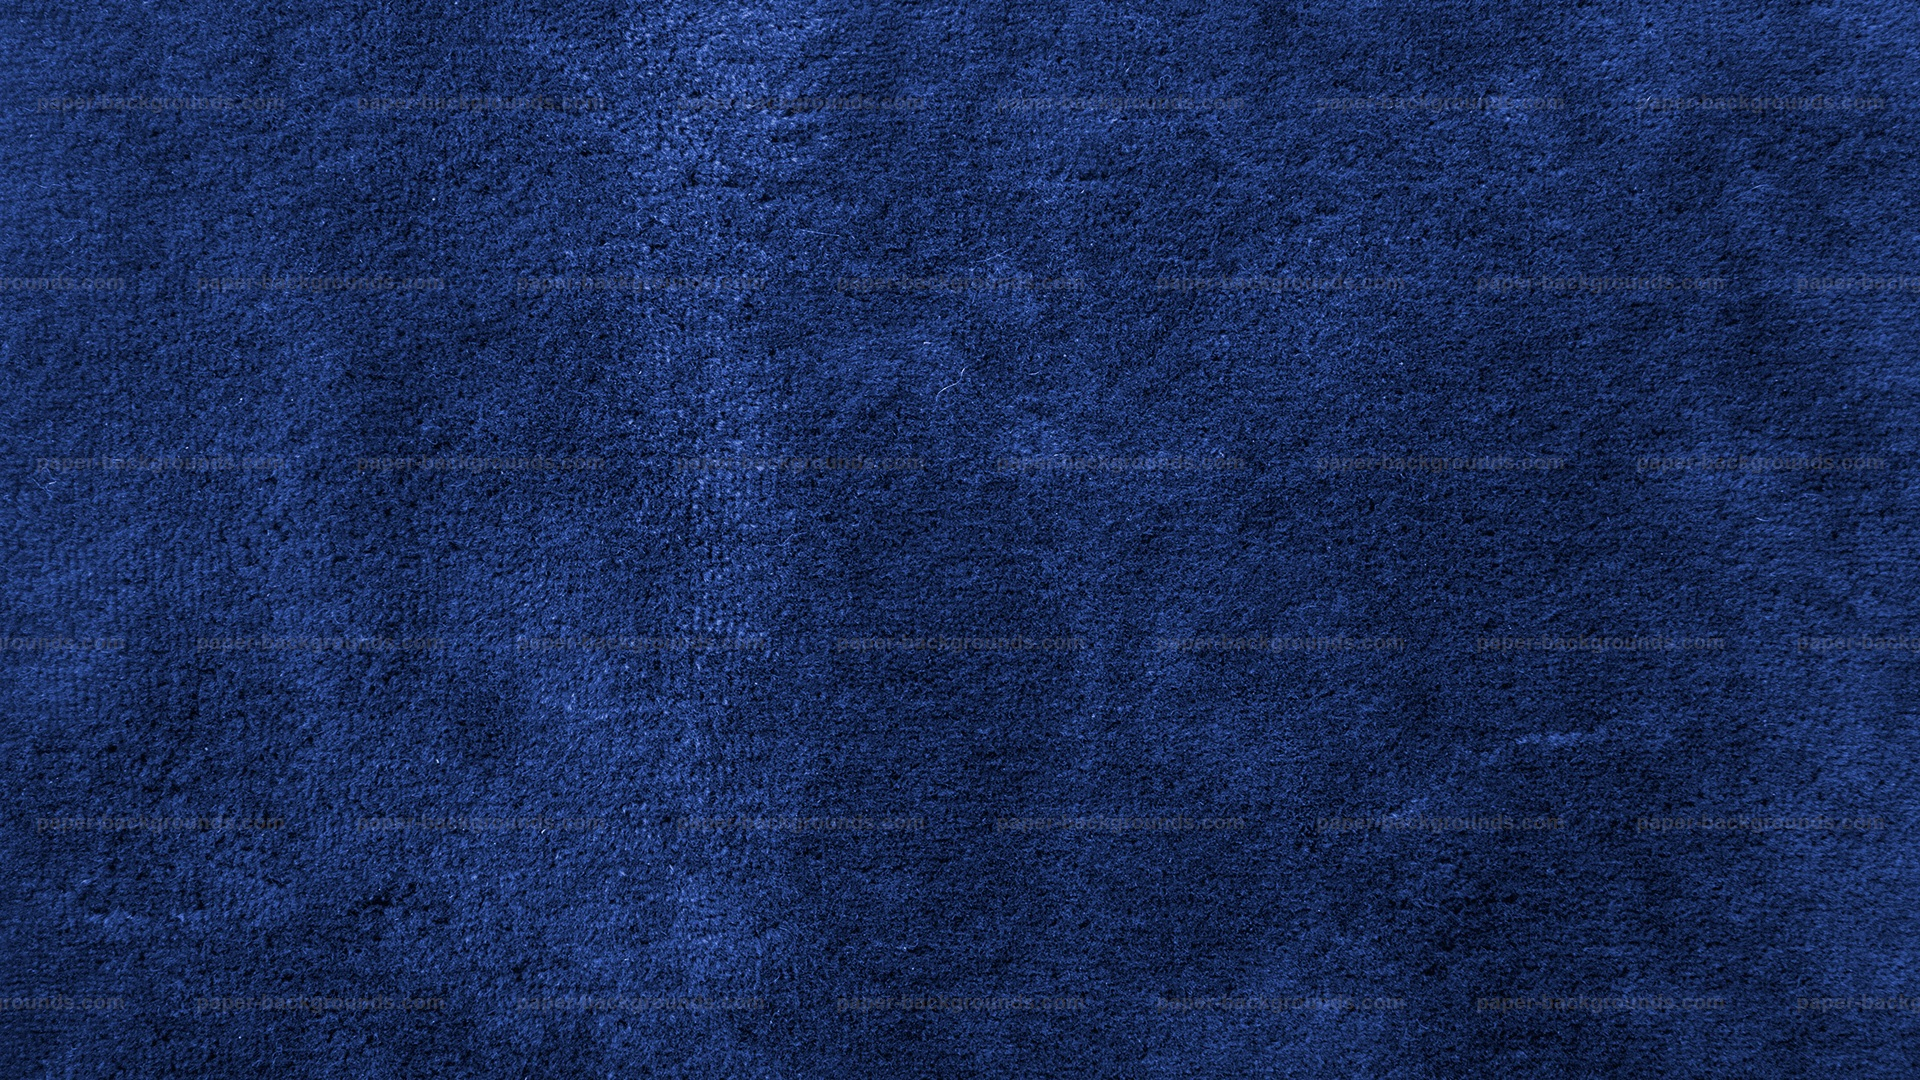 Dark Blueroyal Blue Textured Speckled Desktop Background Wallpaper : Bed Mattress Sale